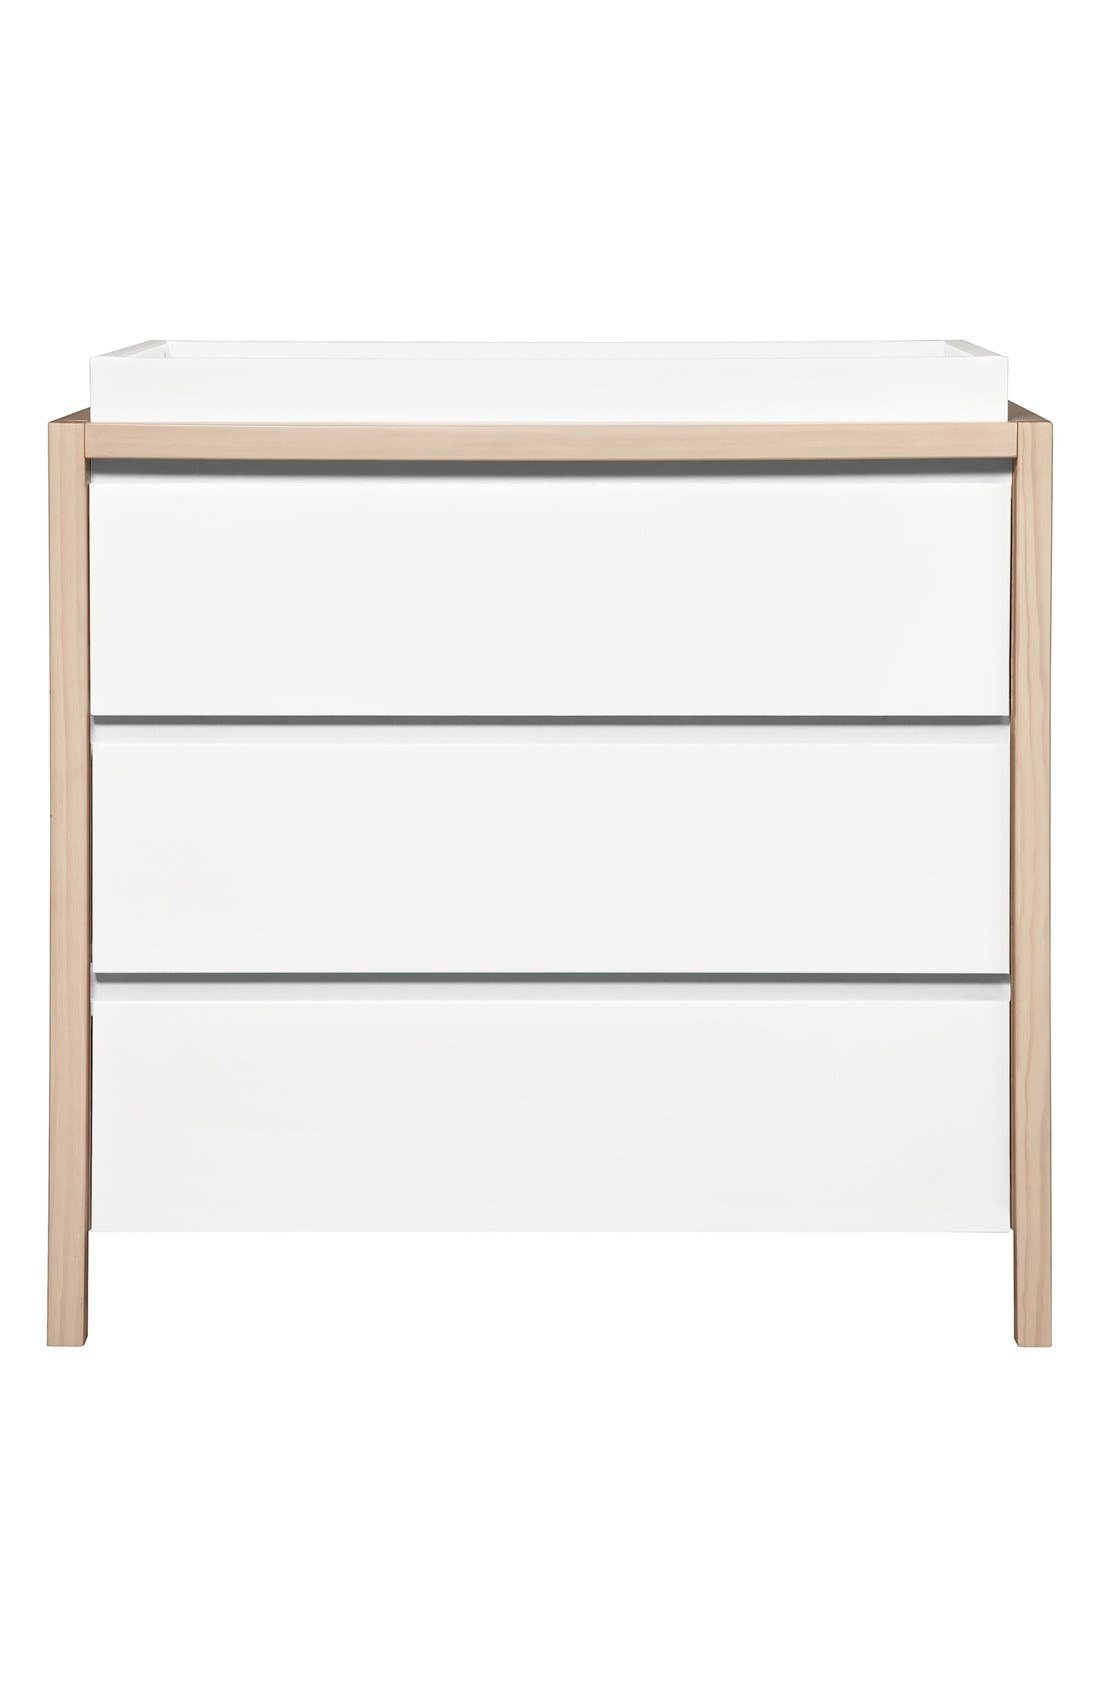 'Bingo' Three Drawer Changer Dresser,                         Main,                         color, White Washed Natural